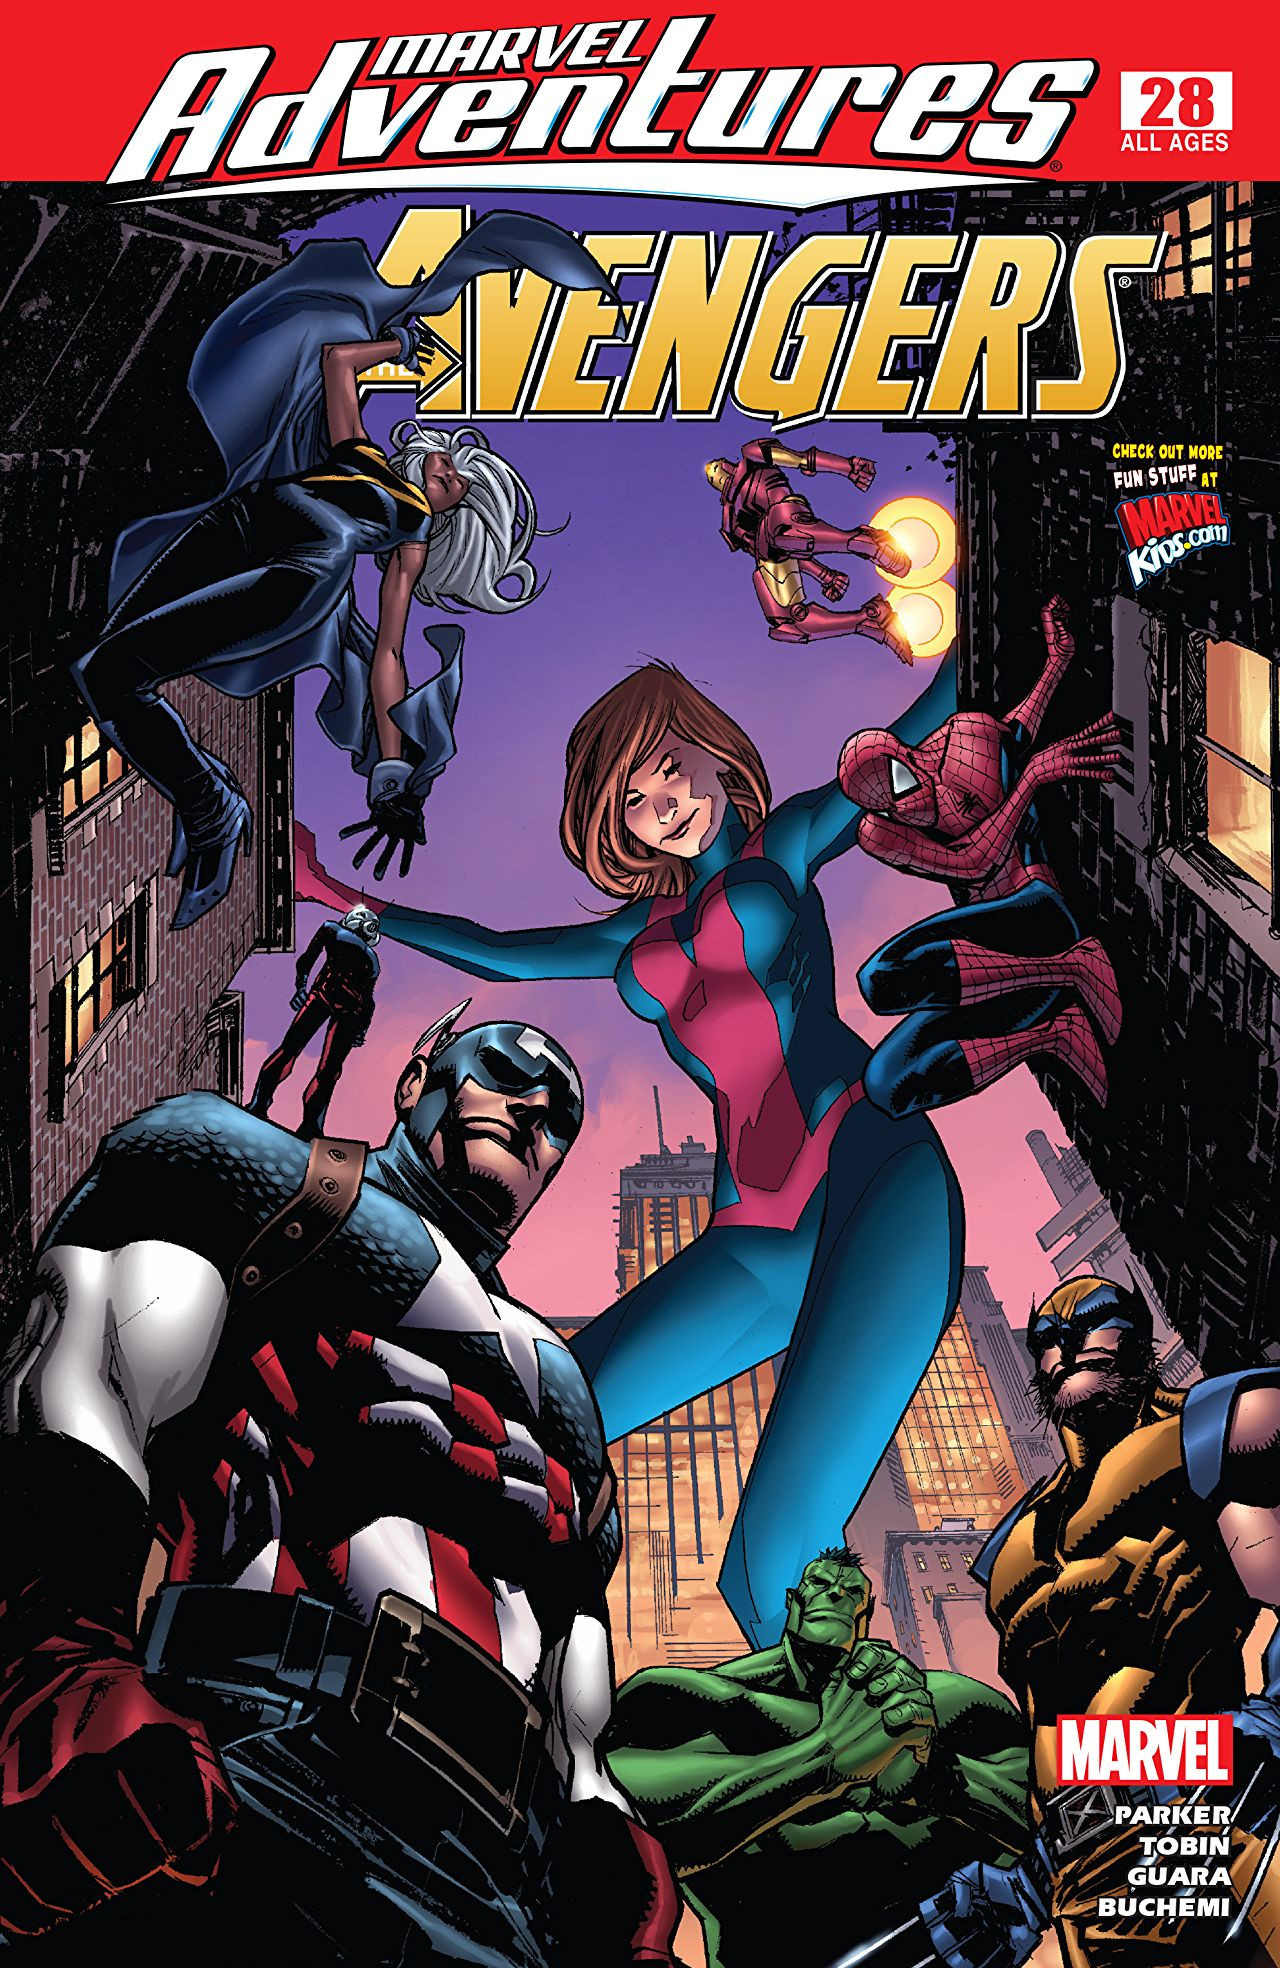 Marvel Adventures: The Avengers Vol 1 28